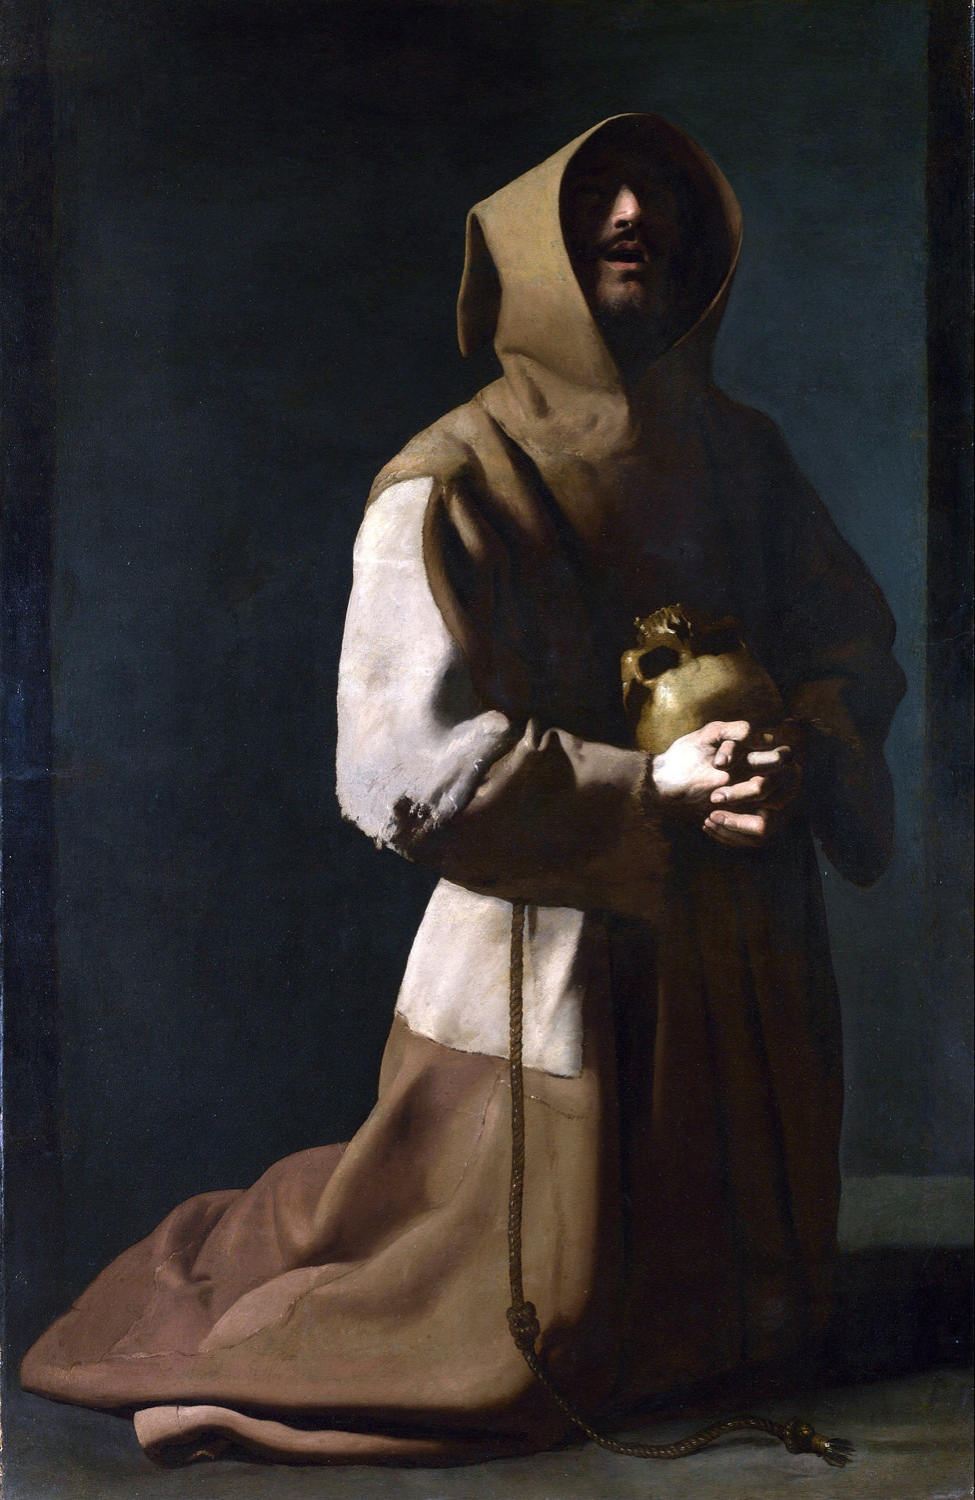 Pinturas De Zurbaran Francisco Zurbarán Artist Arts Biography Es Francisco Ísabel